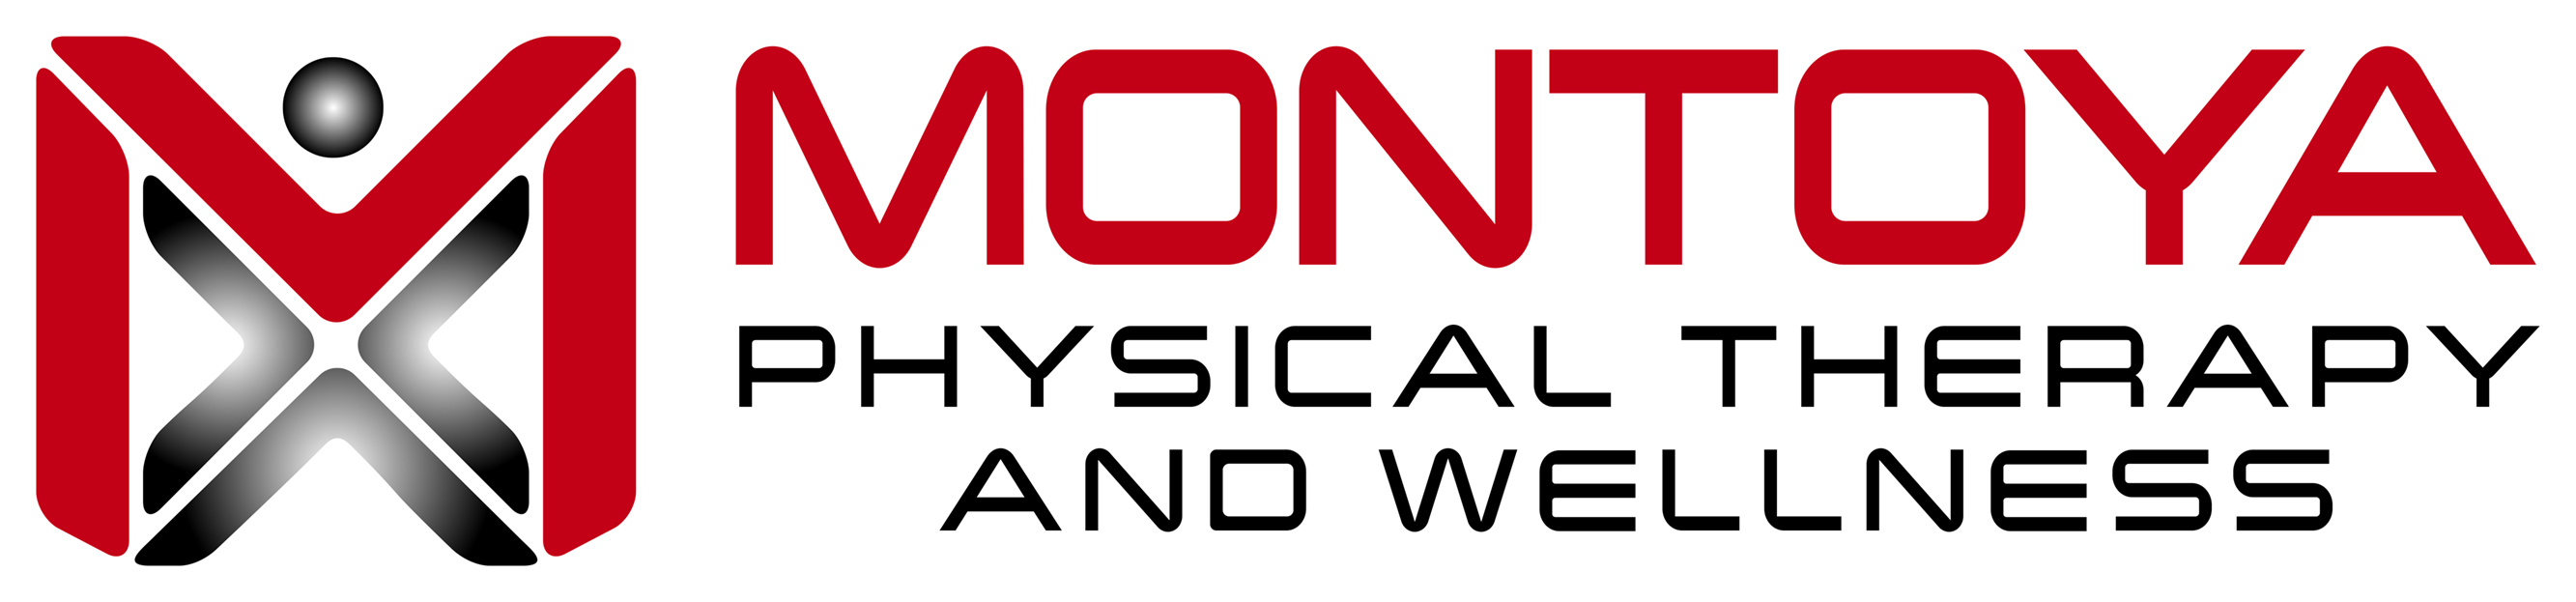 Montoya Physical Therapy